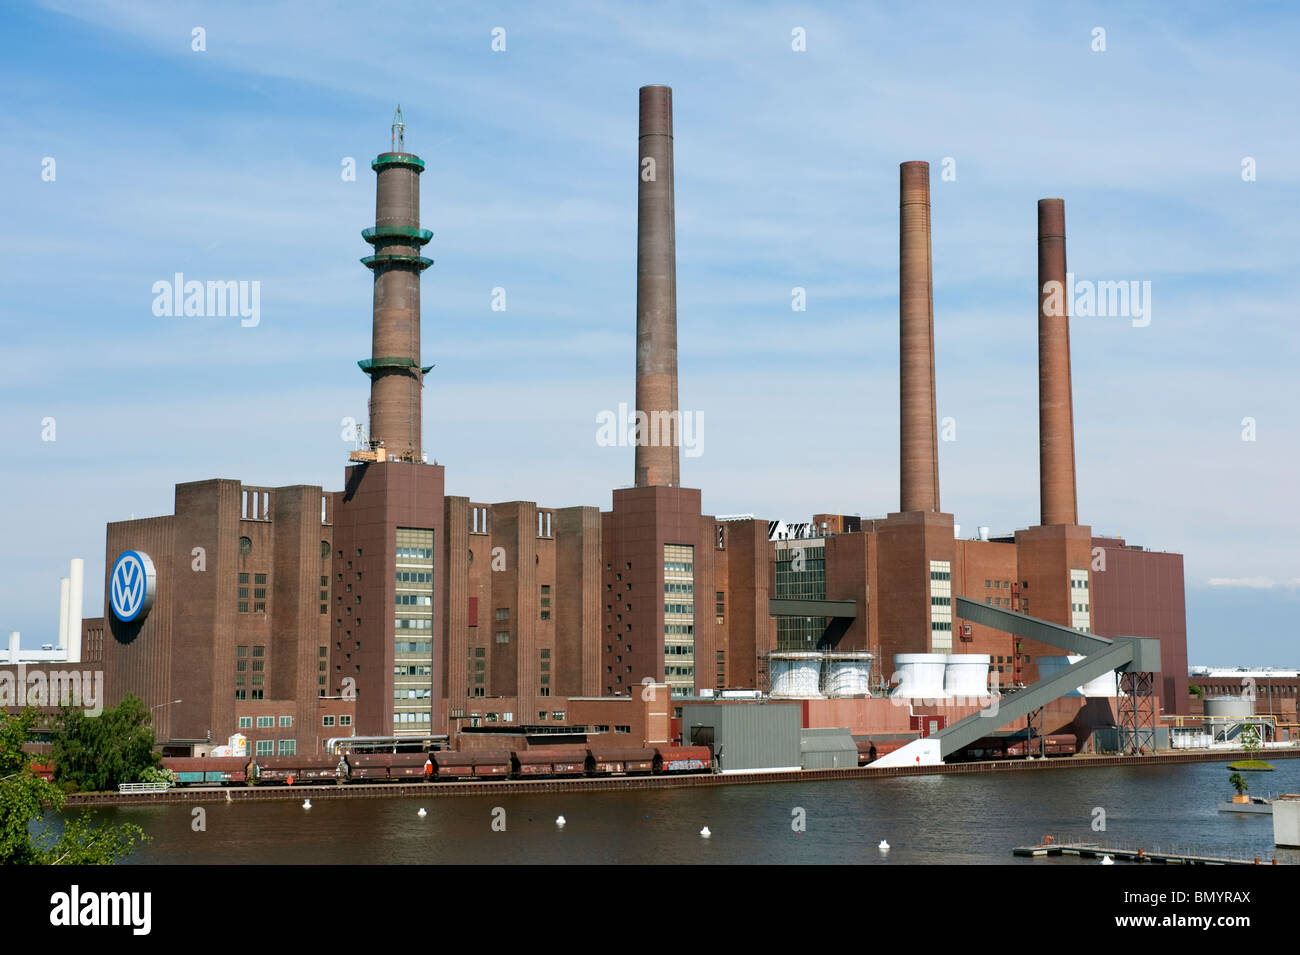 Volkswagen car factory with its own power station at Wolfsburg in Germany - Stock Image